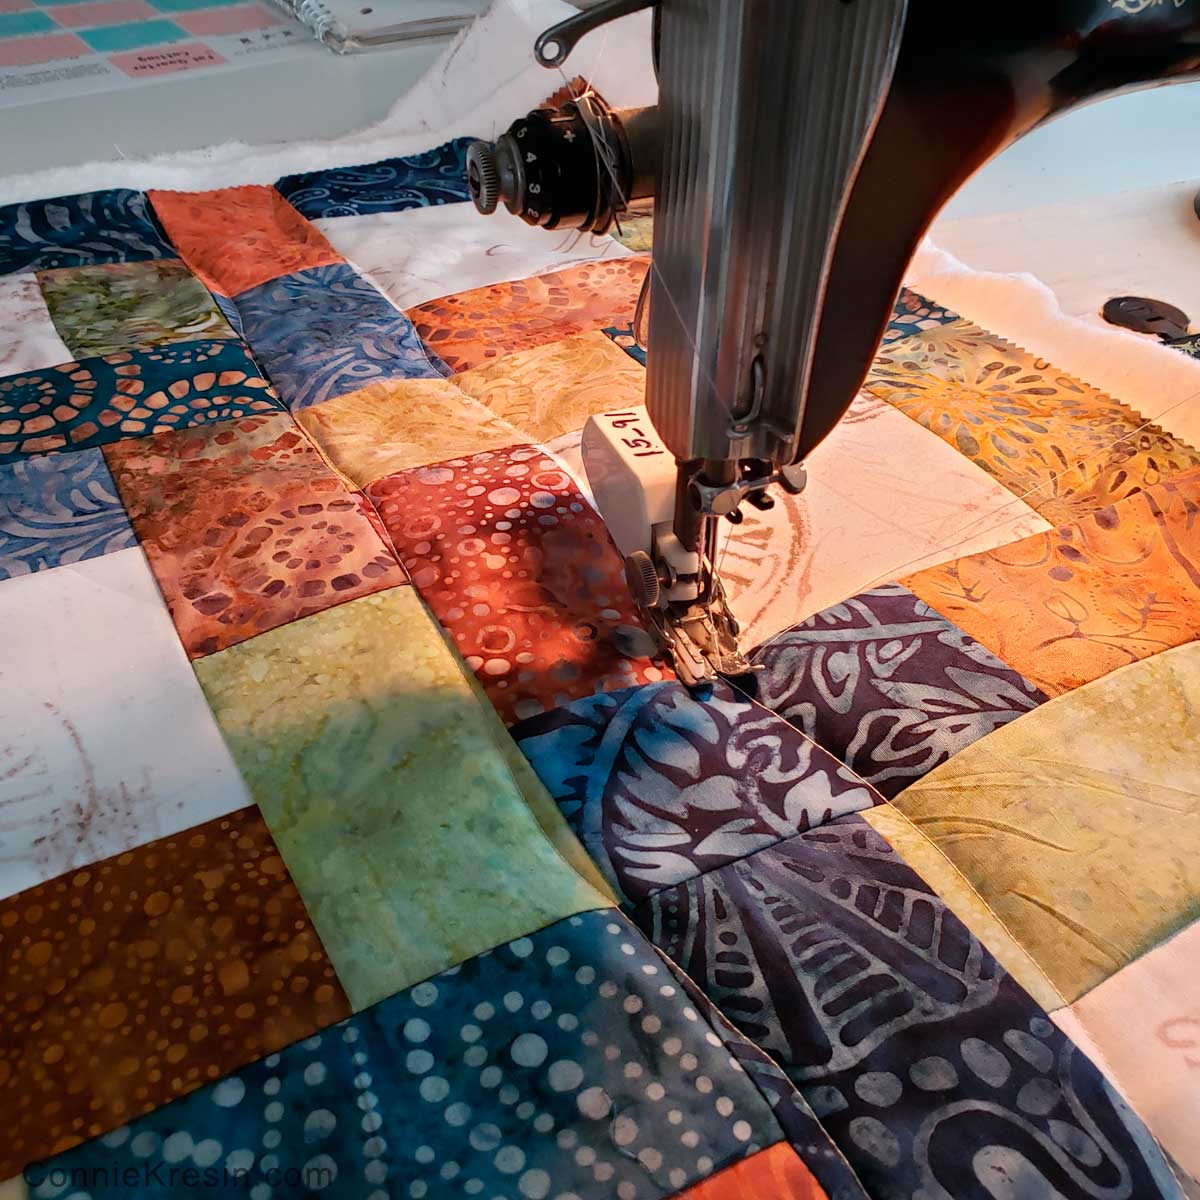 Quilting the table runner